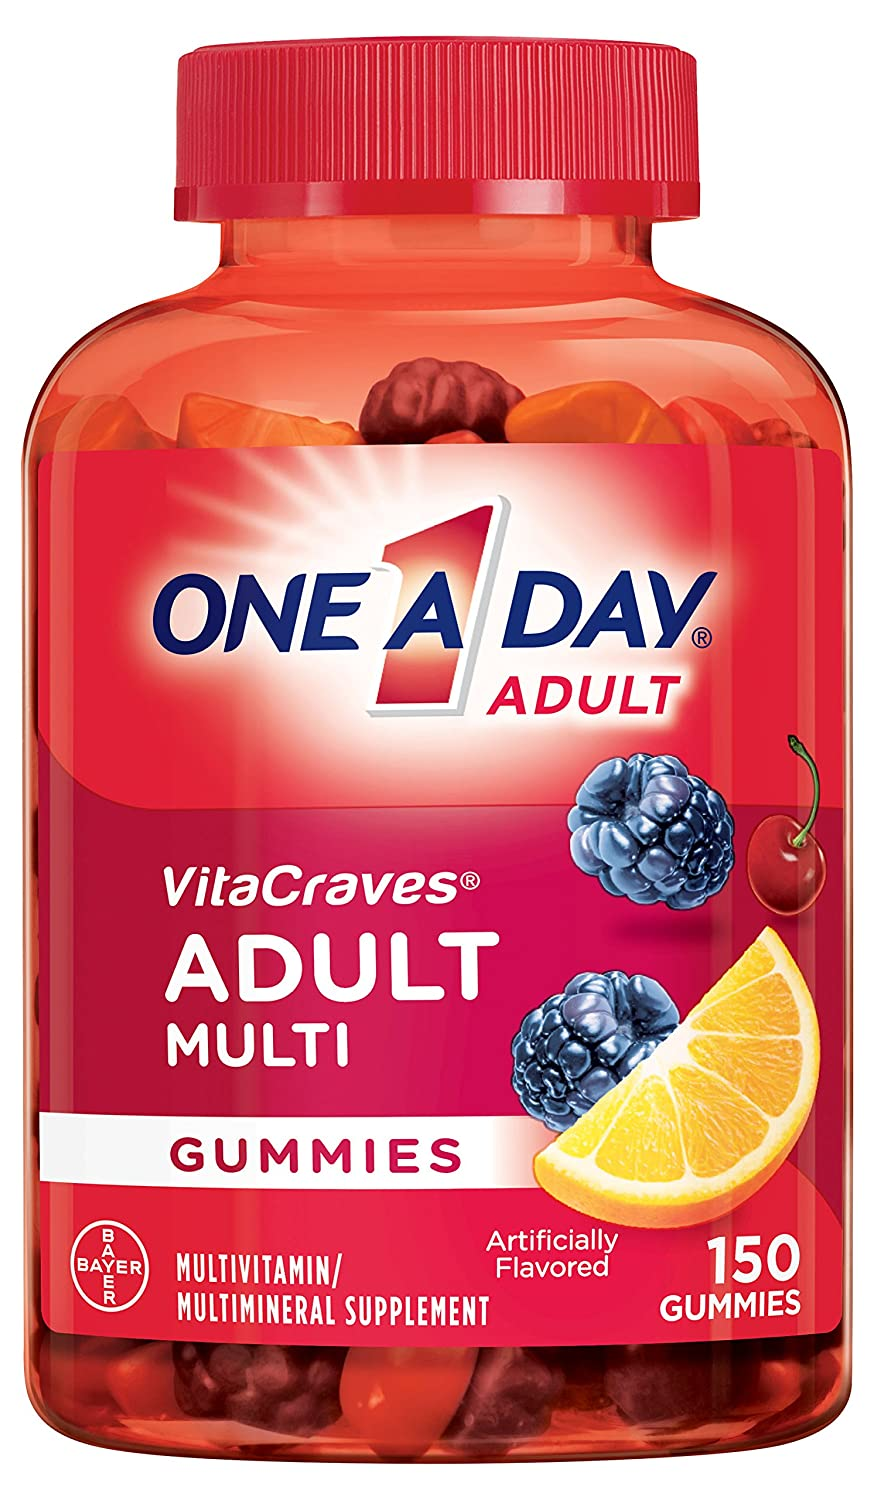 One A Day VitaCraves Adult Multivitamin Gummies, 150 Count BY-281